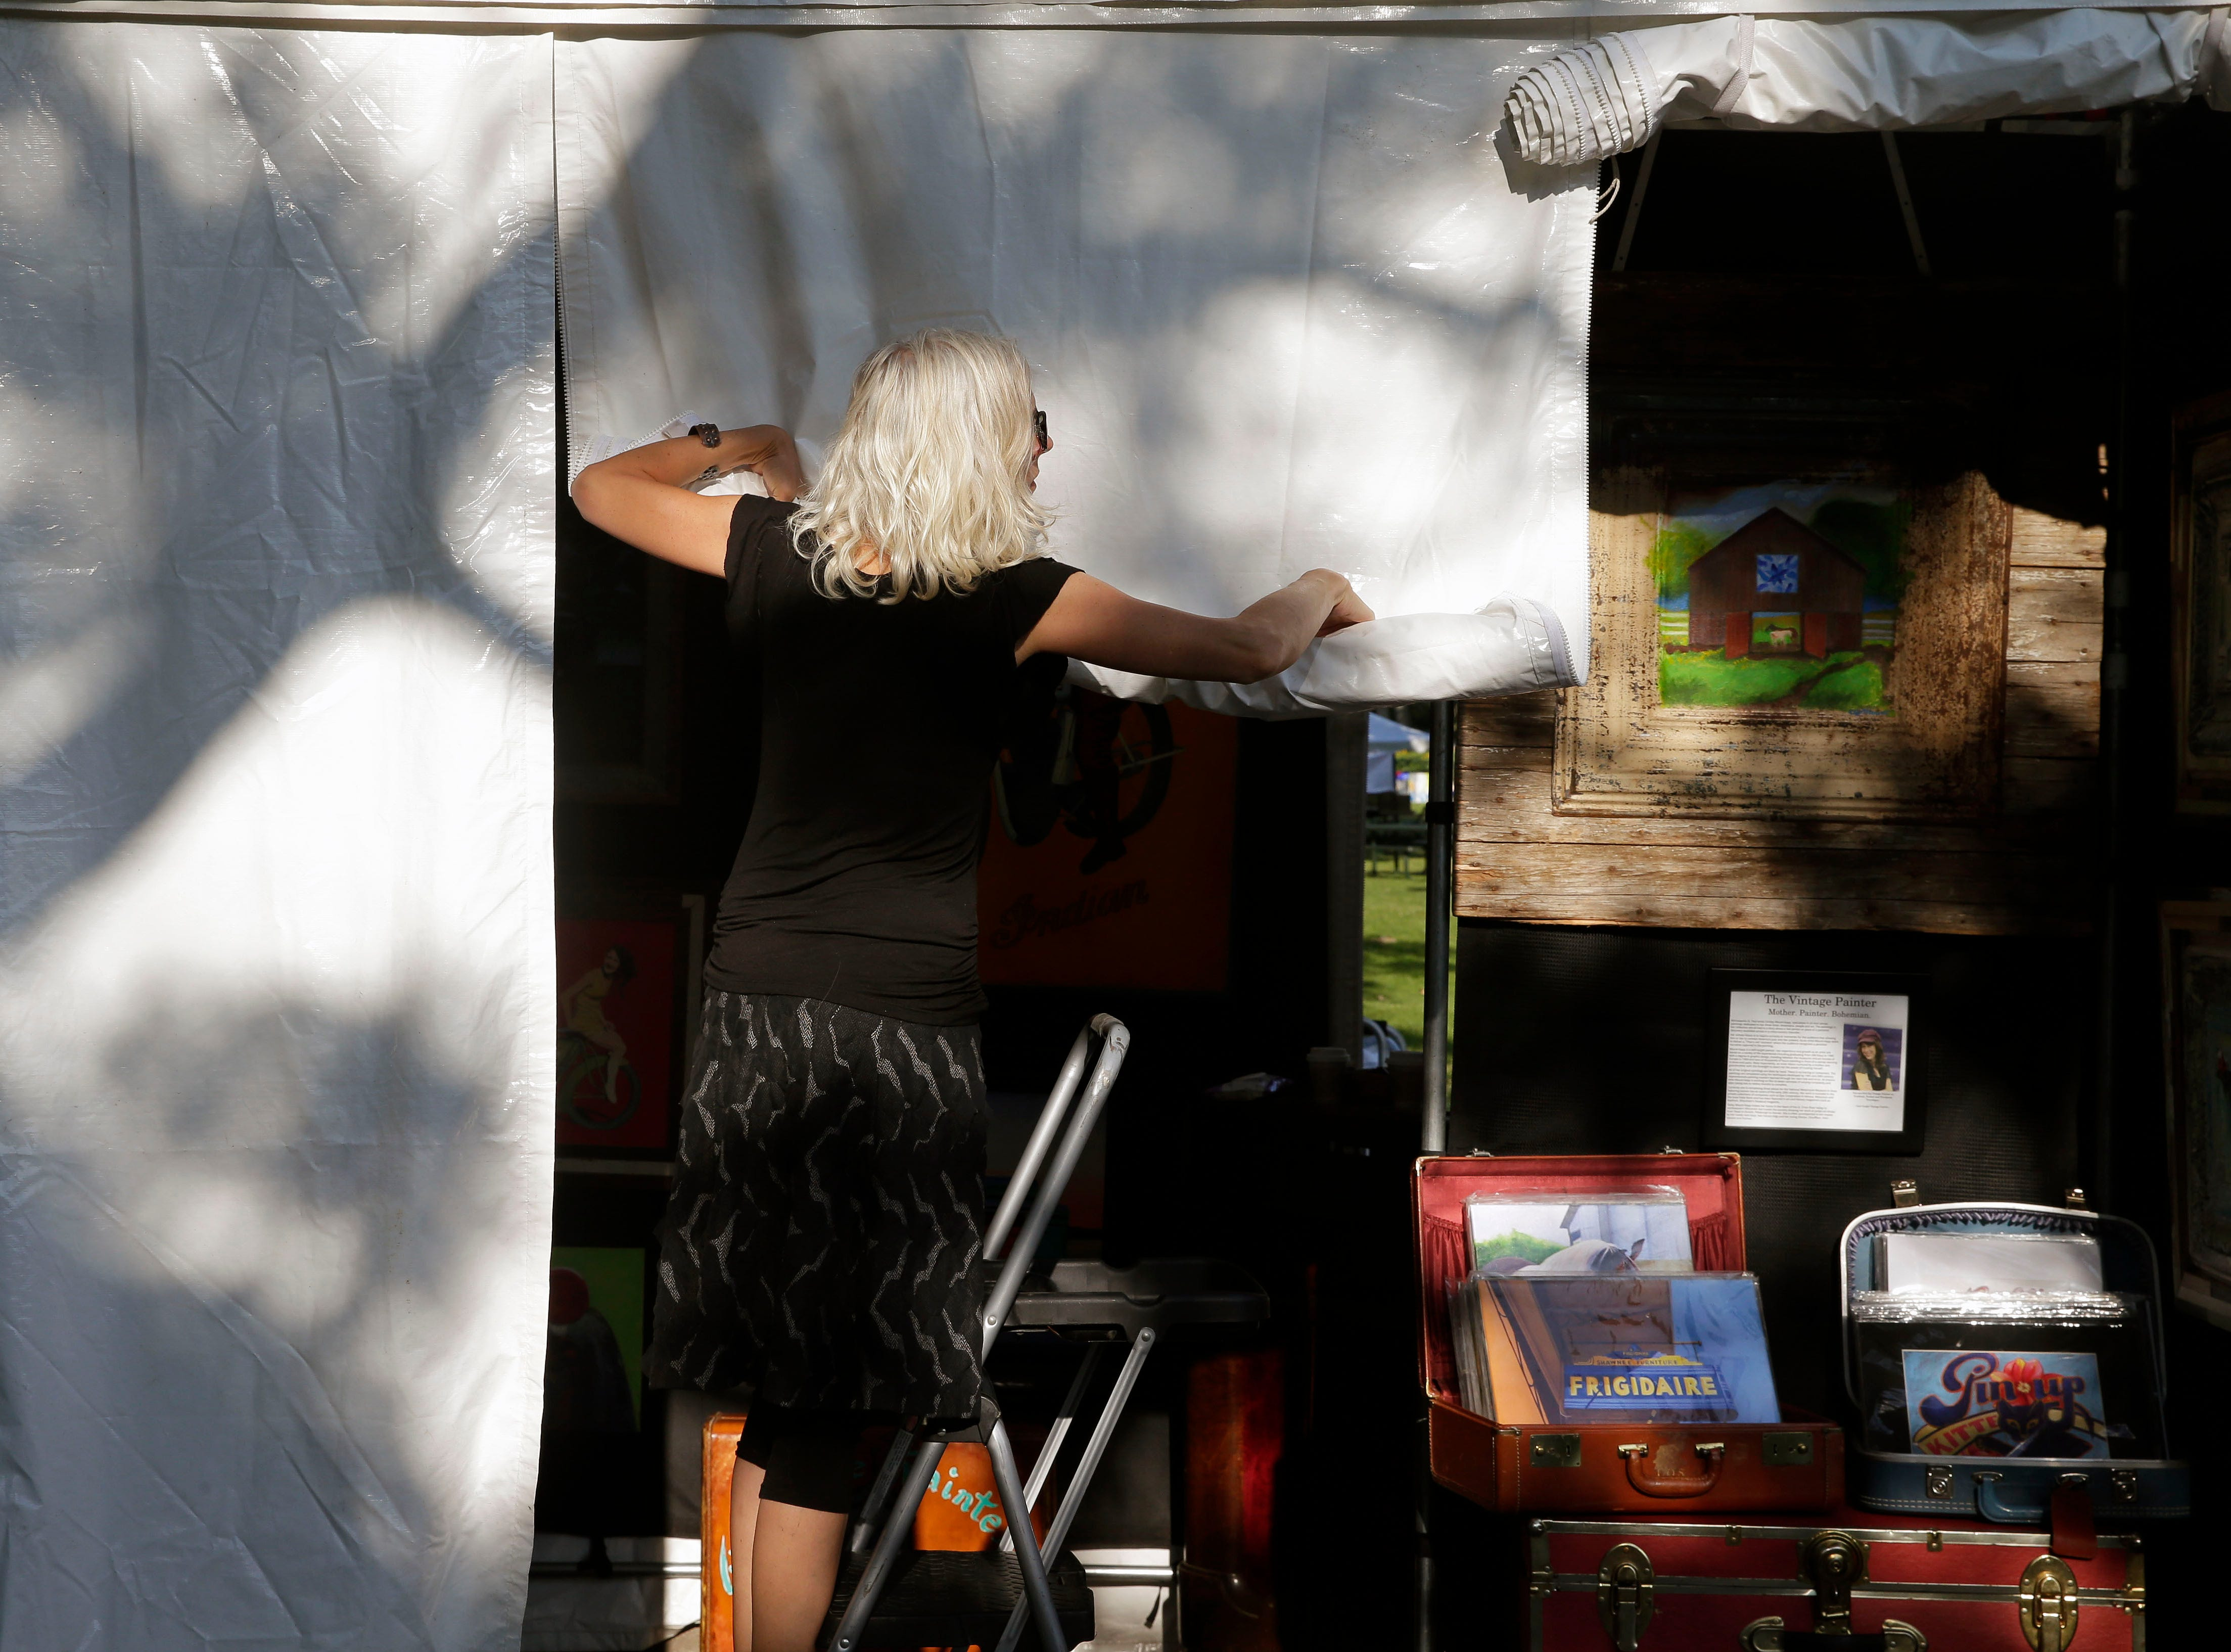 Chrissy Mount gets her booth ready to open as the 58th annual Art at the Park takes place Sunday, July 29, 2018, at City Park in Appleton, Wis.Ron Page/USA TODAY NETWORK-Wisconsin